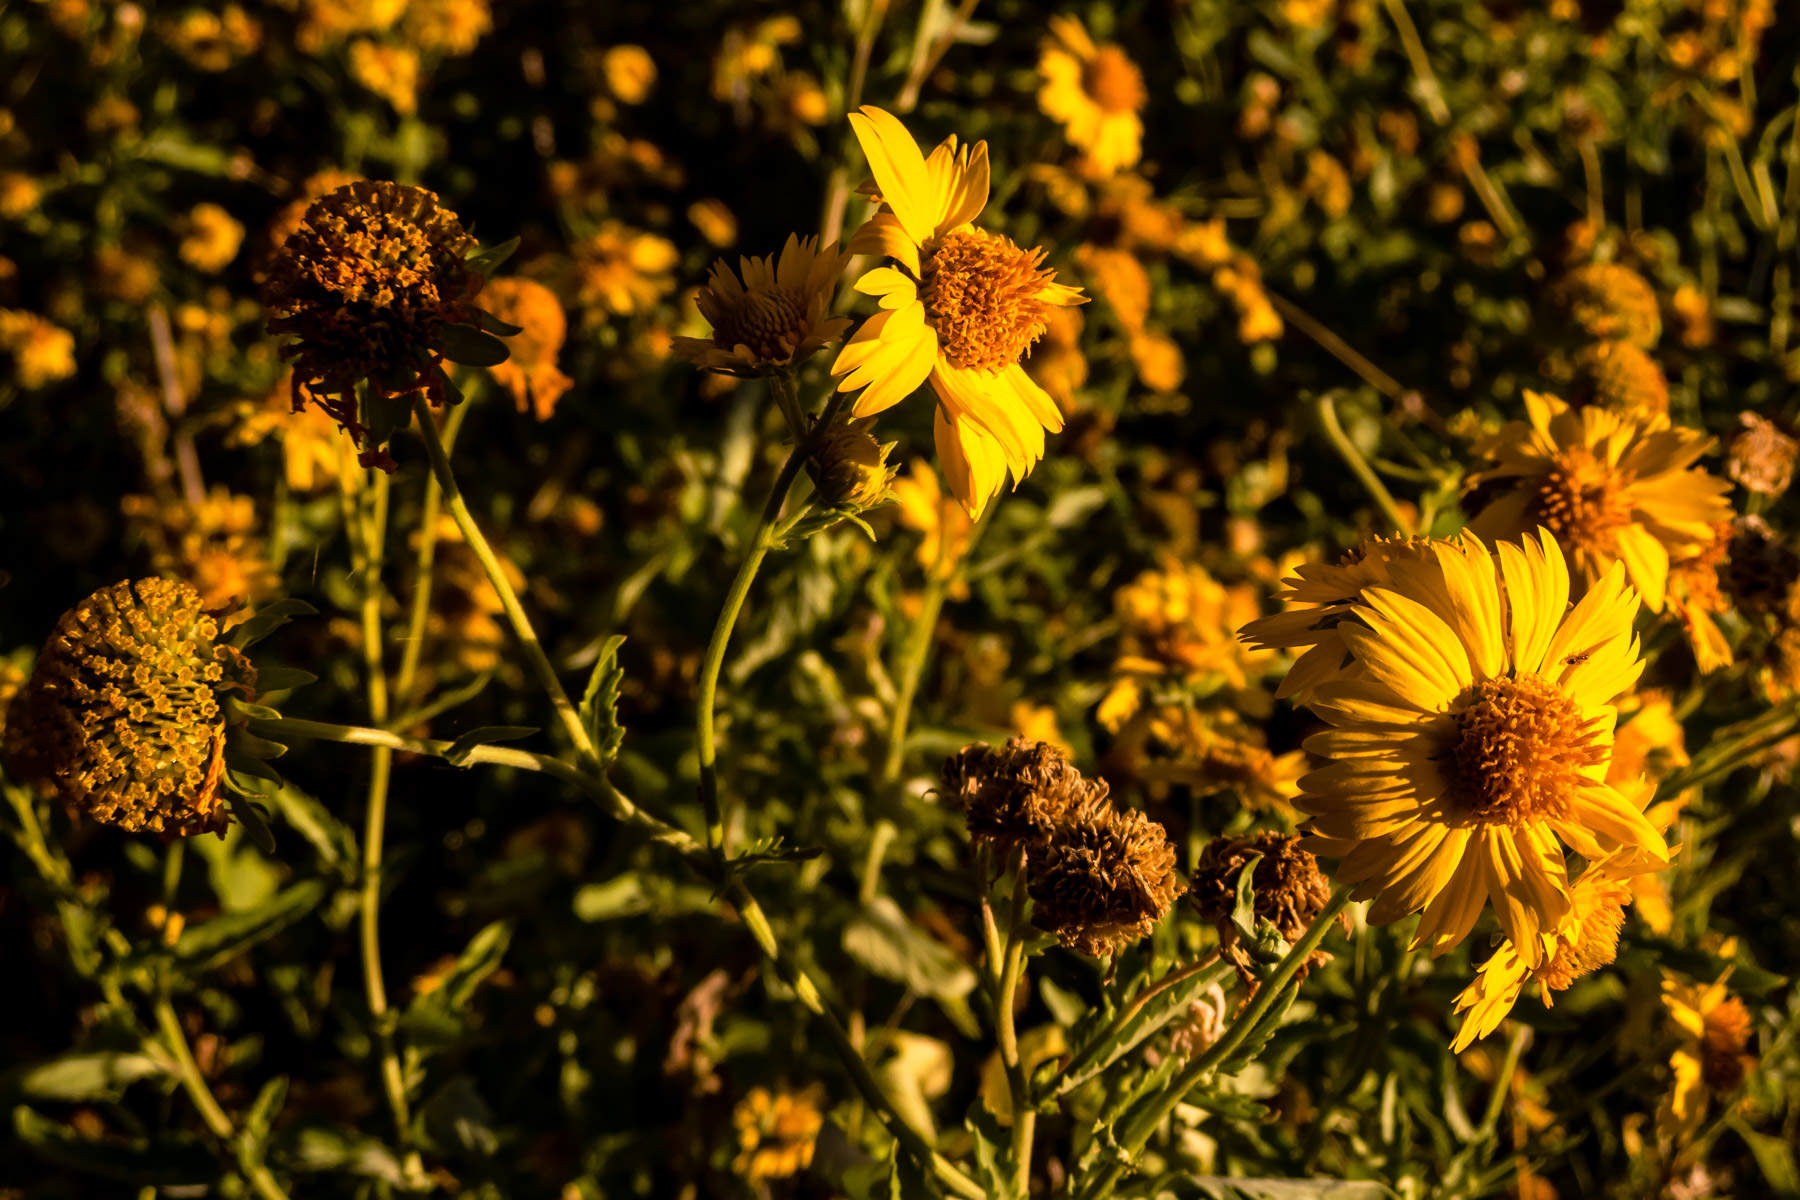 Daisies at the Fort Worth Nature Center & Refuge greet the morning sun.